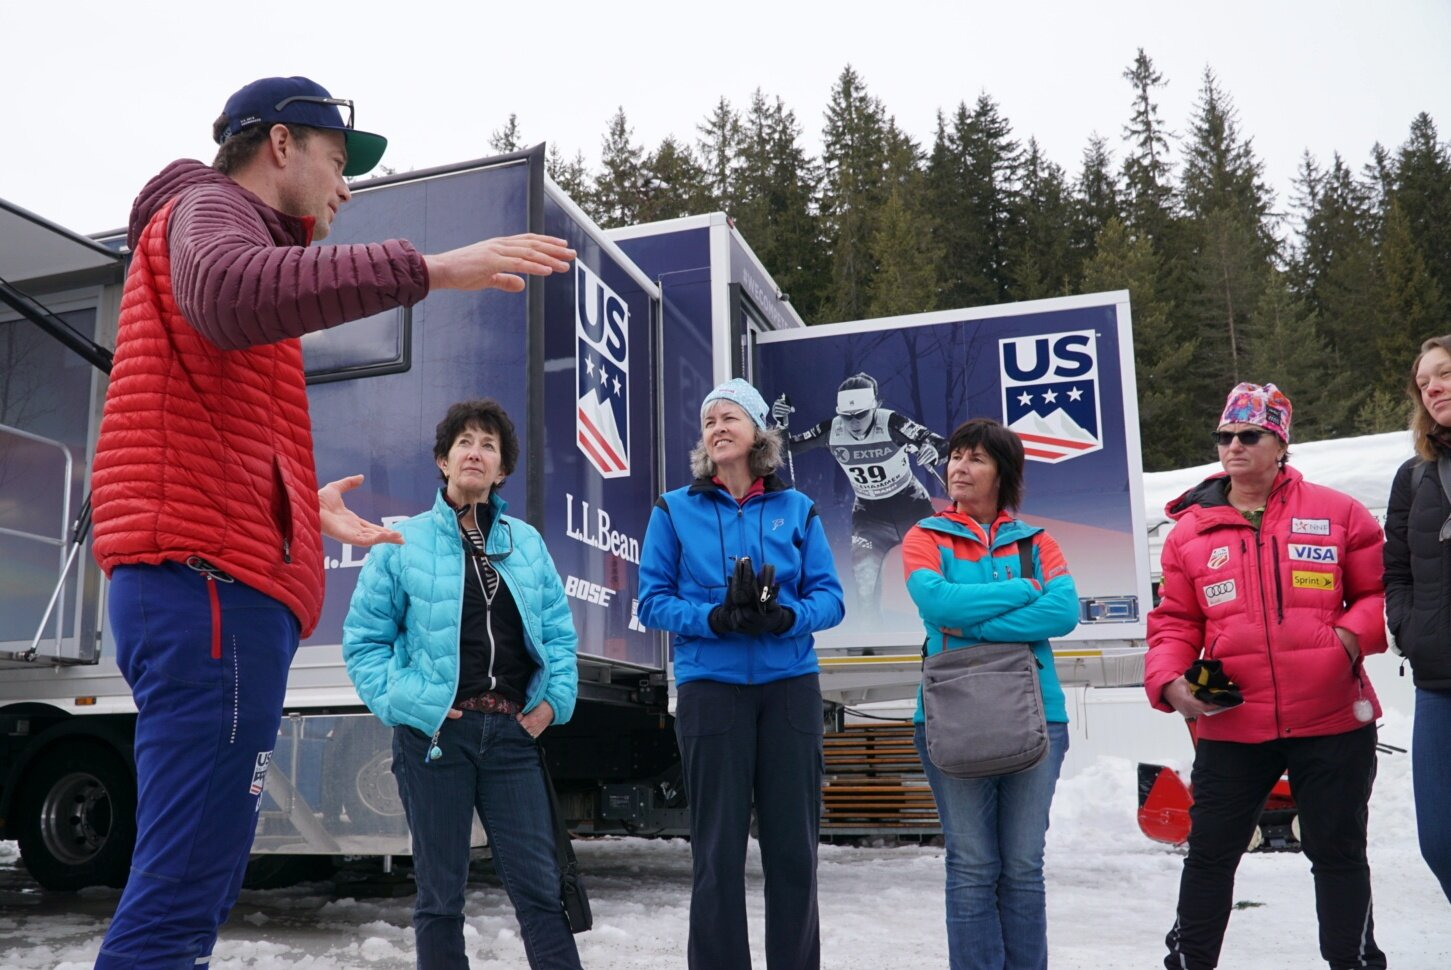 At the Seefeld World Cup, the last event before the 2018 Olympic Games, guests got a behind the scenes tour of the US Ski Team wax trailer with women's team head coach Matt Whitcomb.